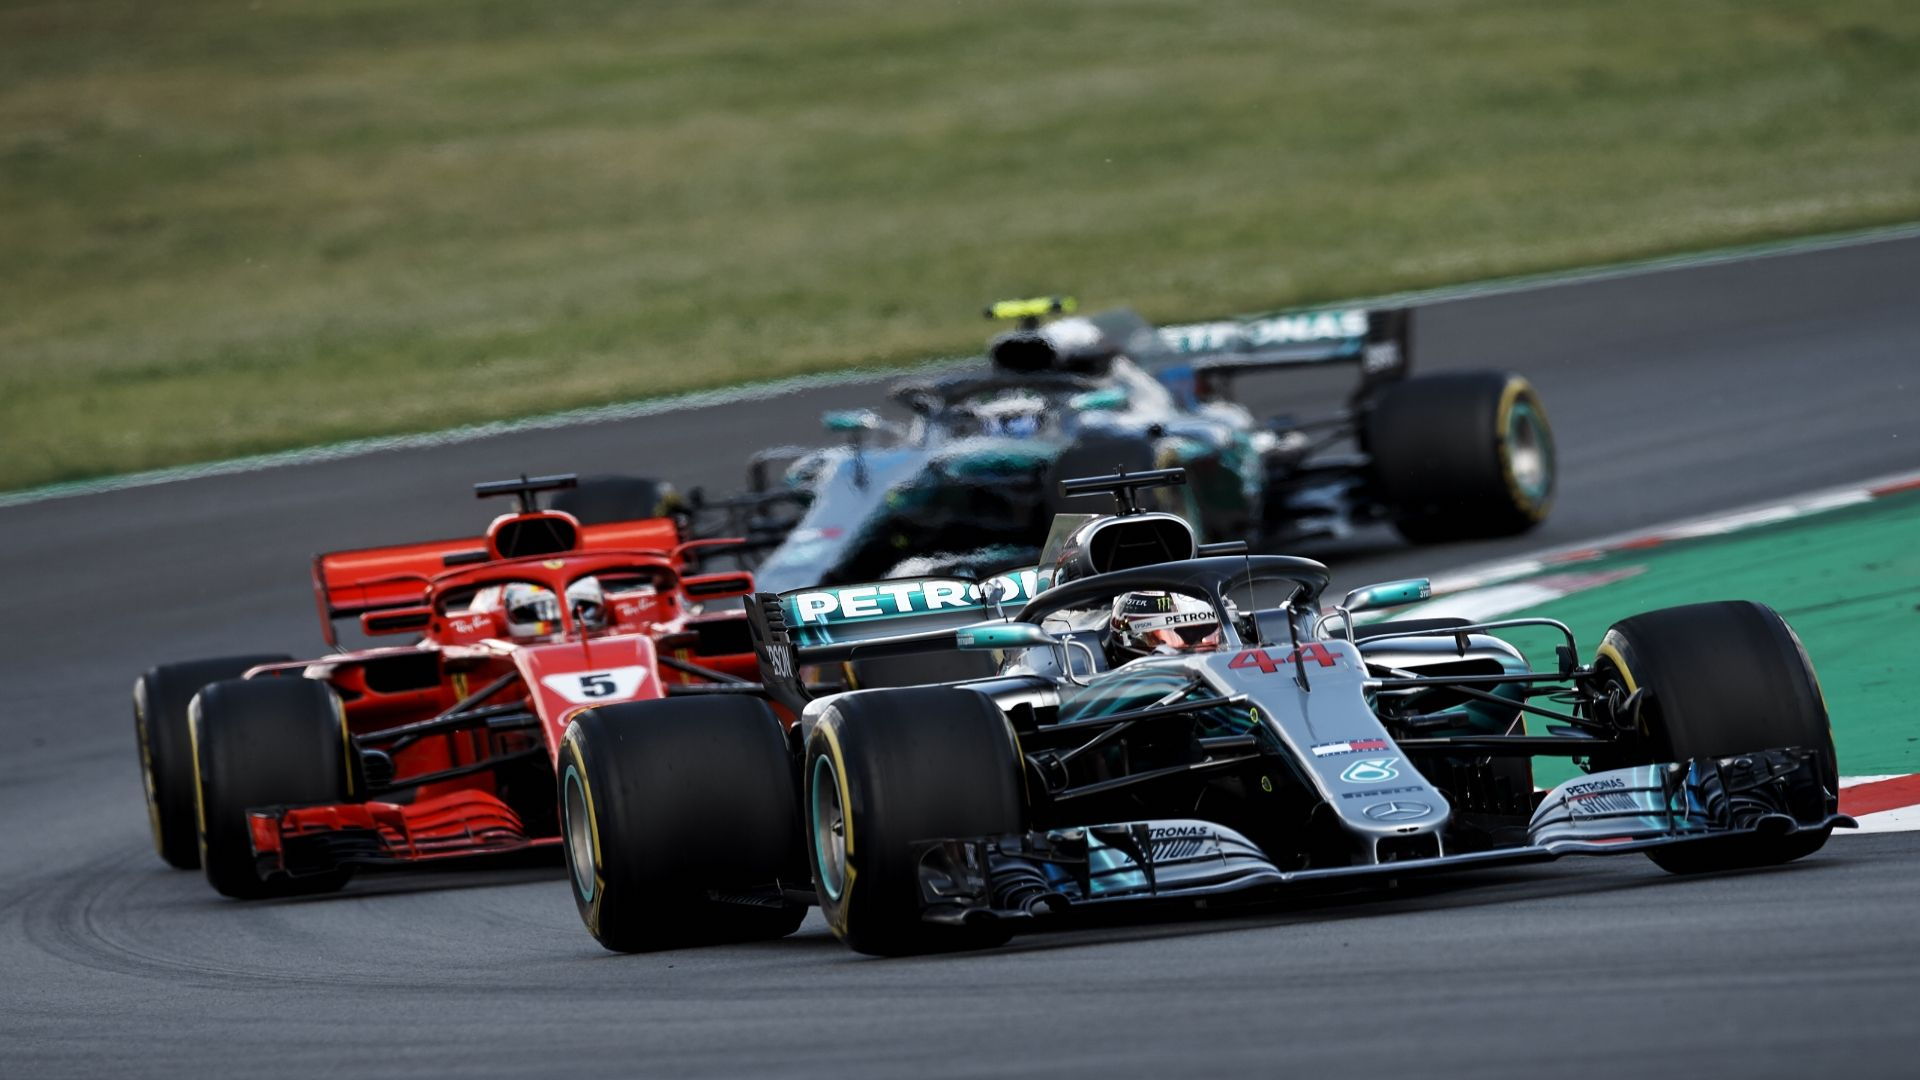 Why was Ferrari slower than Mercedes in Spain?